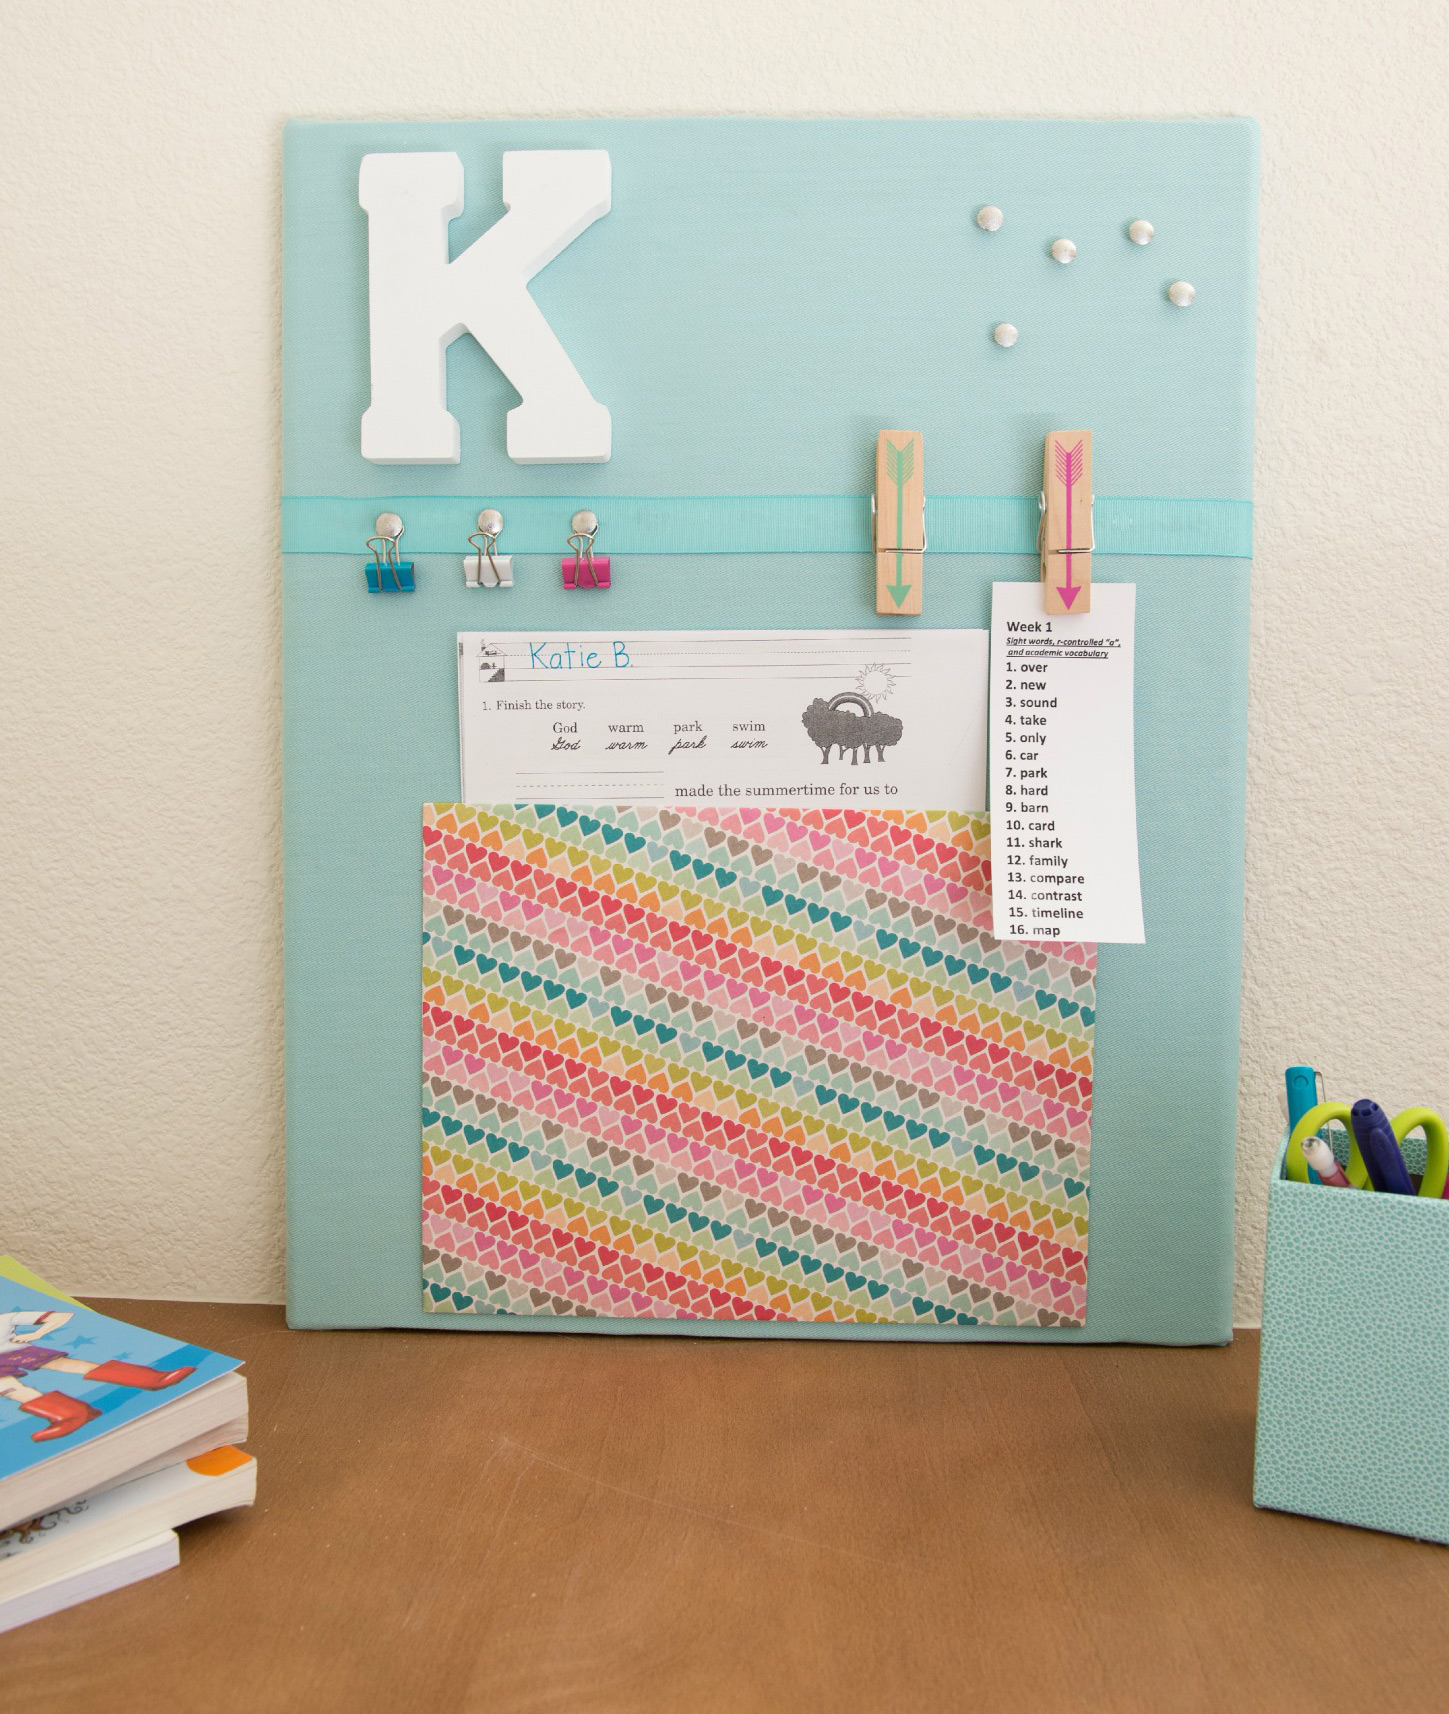 Back to school Bulletin board | Sheknows.com - final product